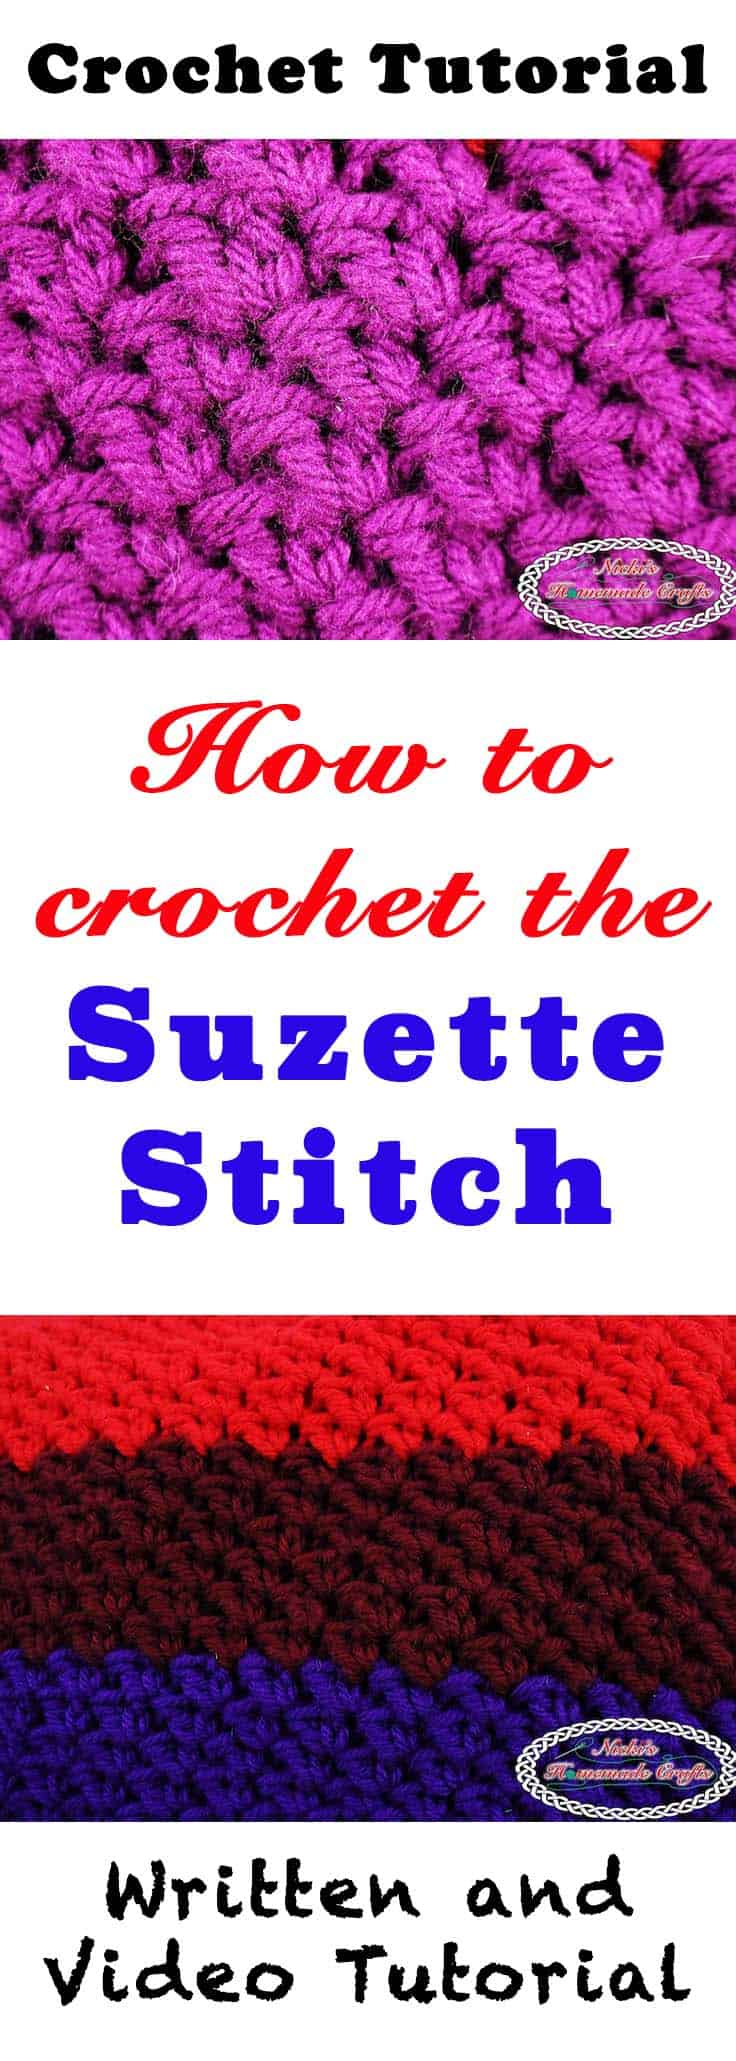 How to crochet the Suzette Stitch - Crochet Stitch Tutorial by Nicki's Homemade Crafts #suzette #crochet #tutorial #stitch #howto #learn #video #teach #easy